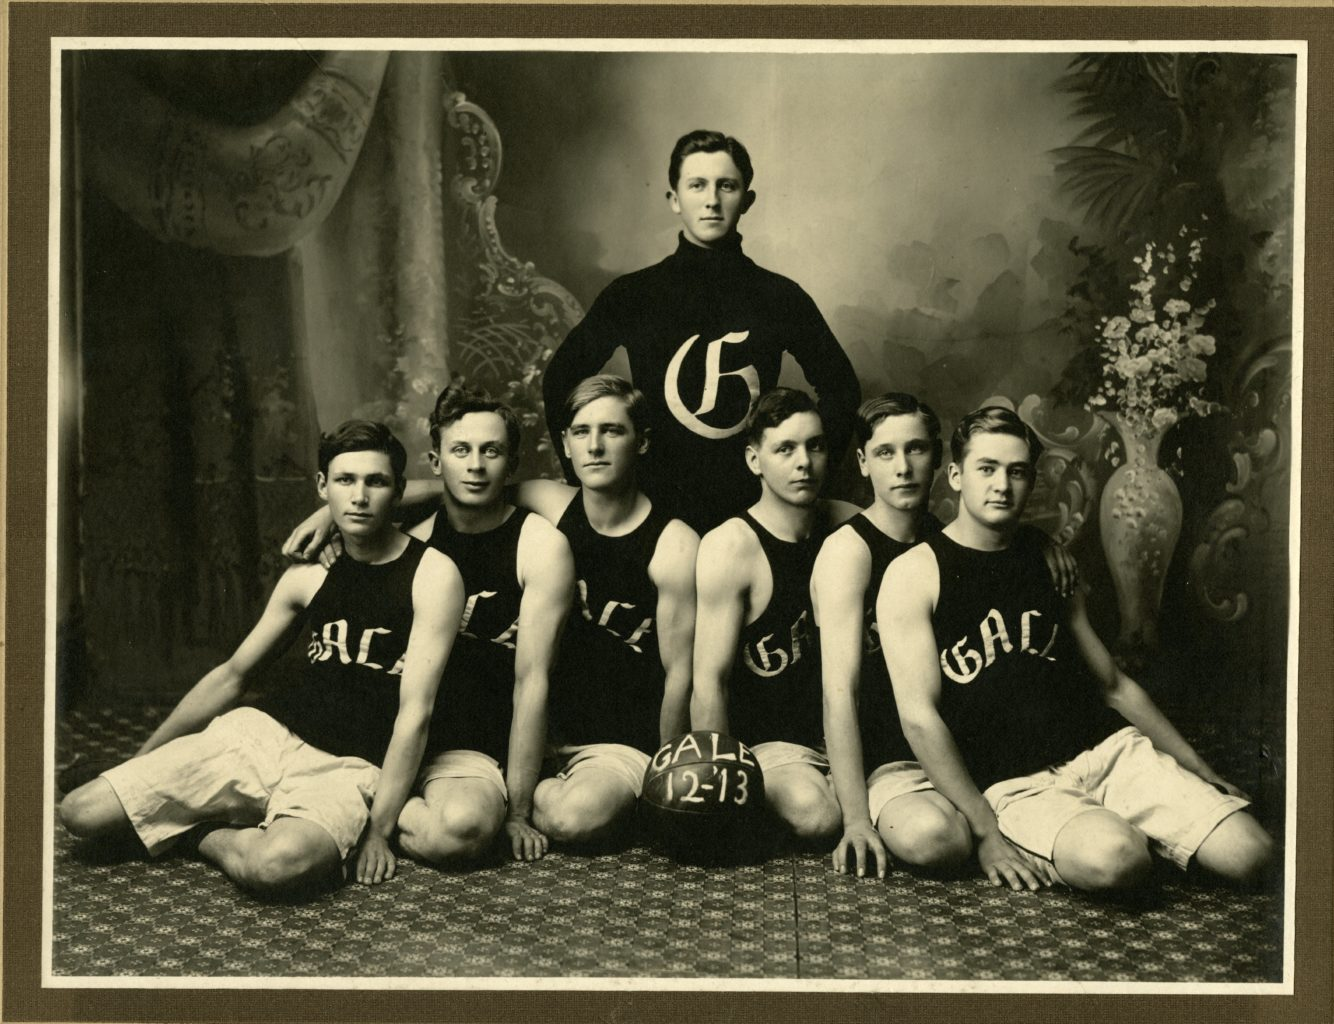 Gale College Basketball Team Group photo.